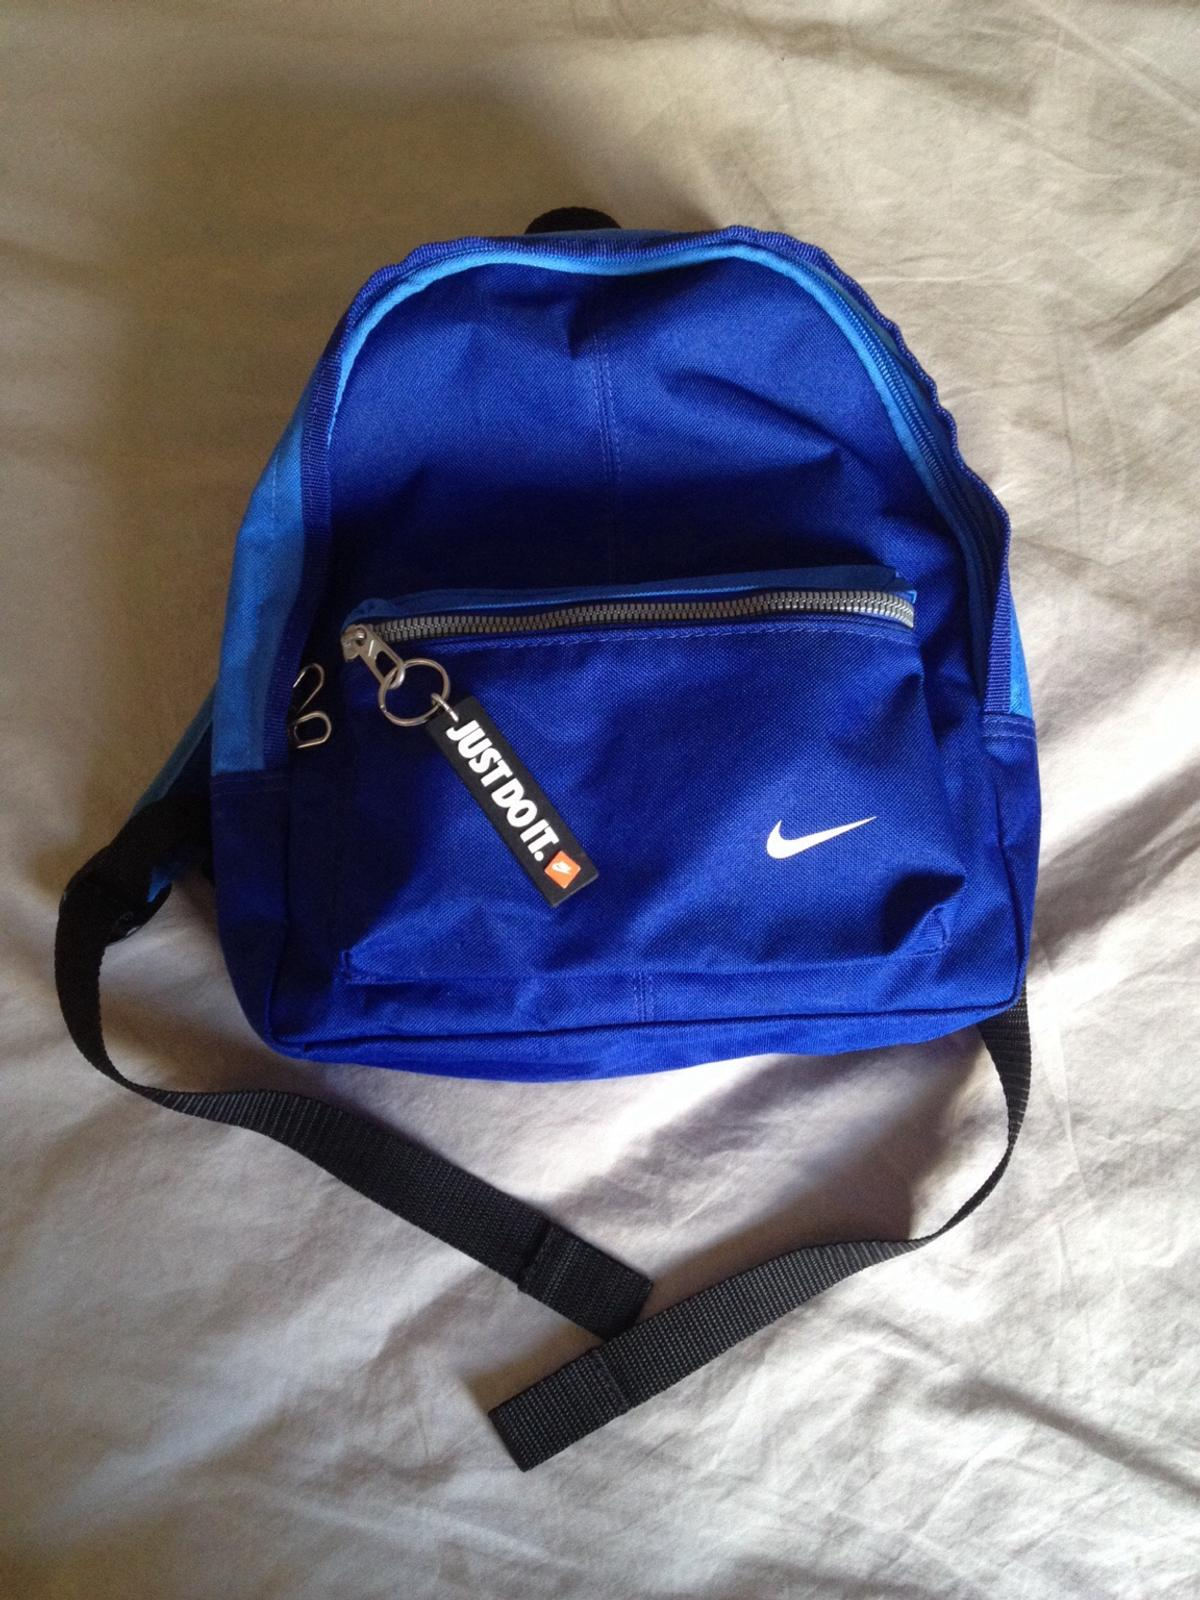 ae75dd6561 Brand new Nike mini base backpack in RG2 Reading for £5.00 for sale ...